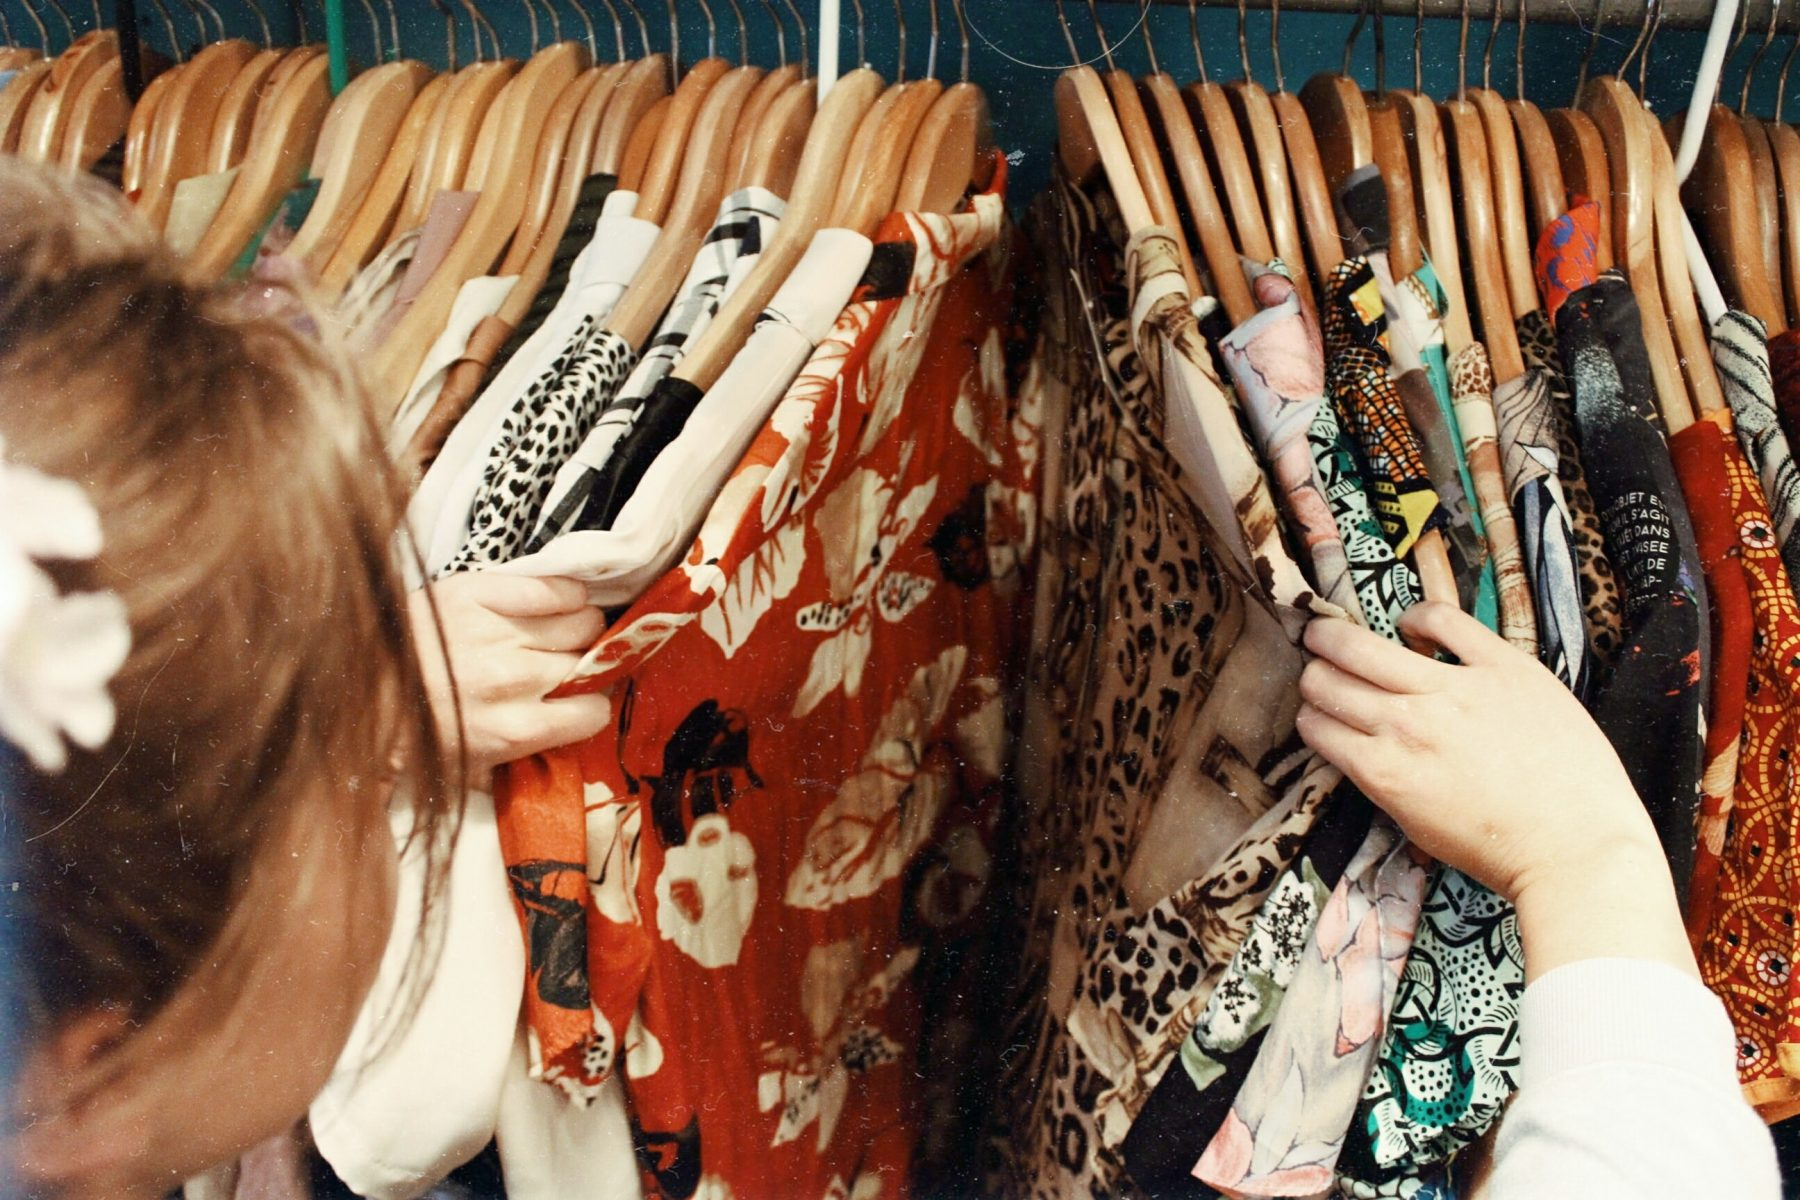 Young woman shopping for clothes at a clothing store or thrift store